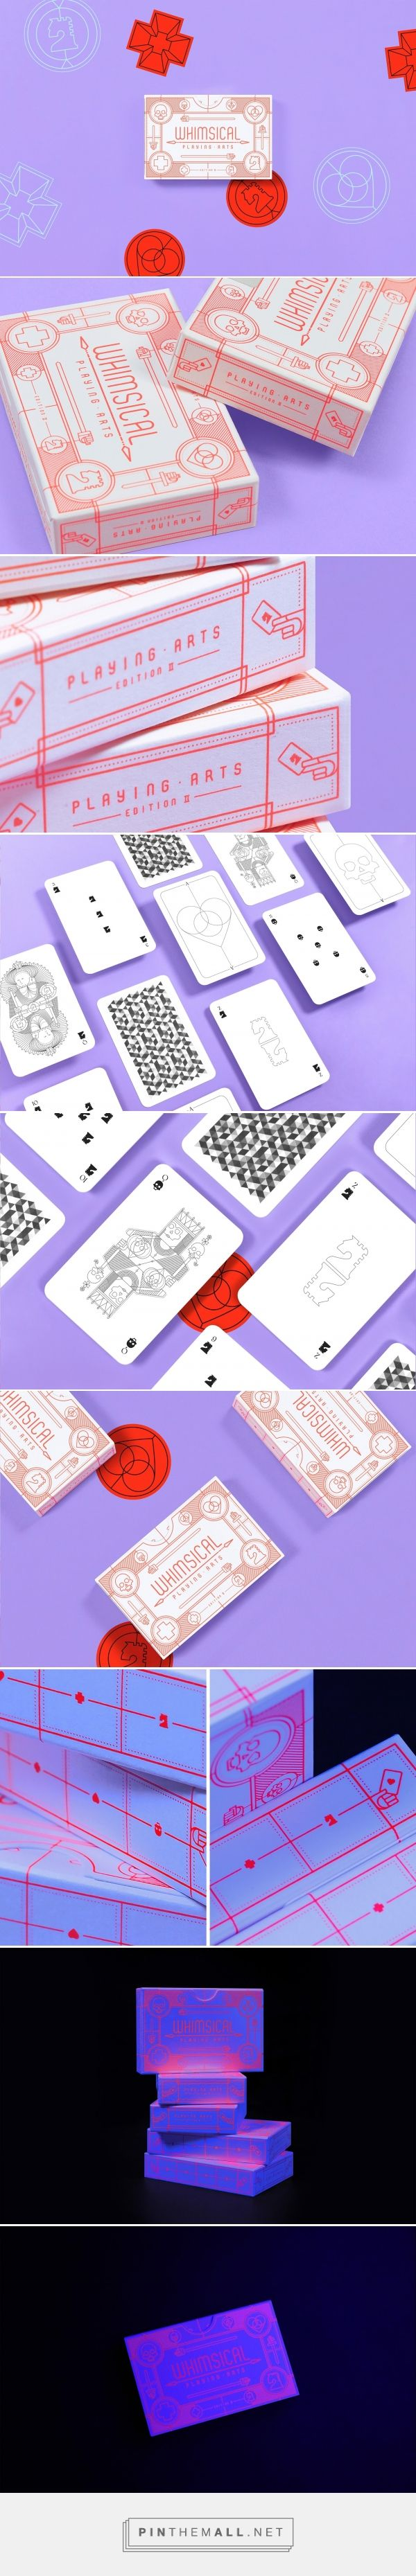 Whimsical Playing Cards | Edition II packaging design by Oksal Yesilok - https://www.packagingoftheworld.com/2018/03/whimsical-playing-cards-edition-ii.html